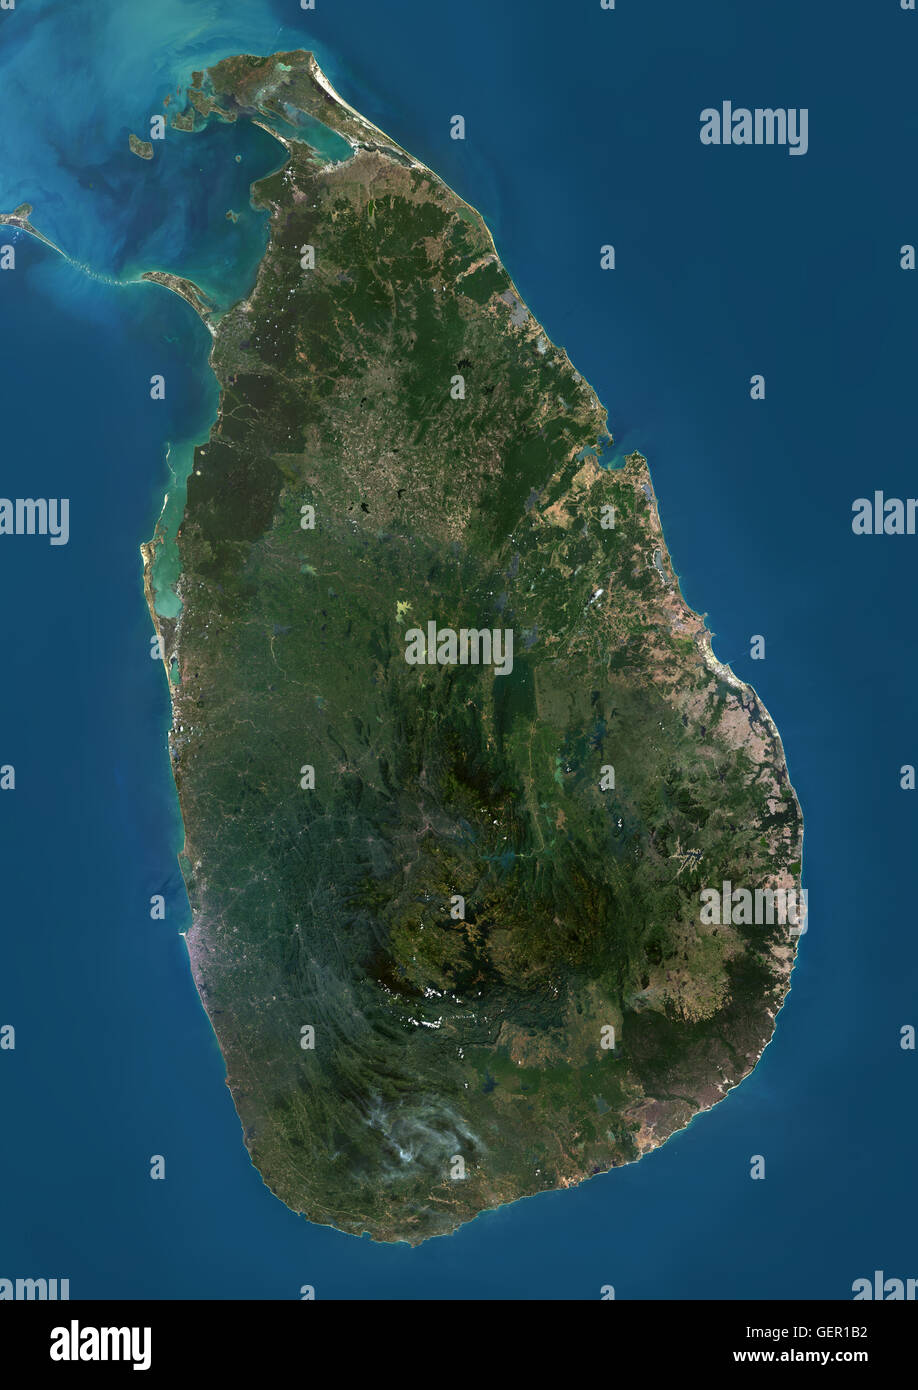 Satellite view of Sri Lanka. This image was compiled from ... on satellite map of the vatican, satellite map of trinidad and tobago, satellite map of haiti, satellite map of cebu island, satellite map of abu dhabi, satellite map of iraq, satellite map of qatar, satellite map of kosovo, satellite map of czech republic, satellite map of mali, satellite map of brunei darussalam, satellite map of united states of america, satellite map of vatican city, satellite map of saipan, satellite map of tunisia, satellite map of iceland, satellite map of quezon city, satellite map of somalia, satellite map of caribbean islands, satellite map of eastern europe,